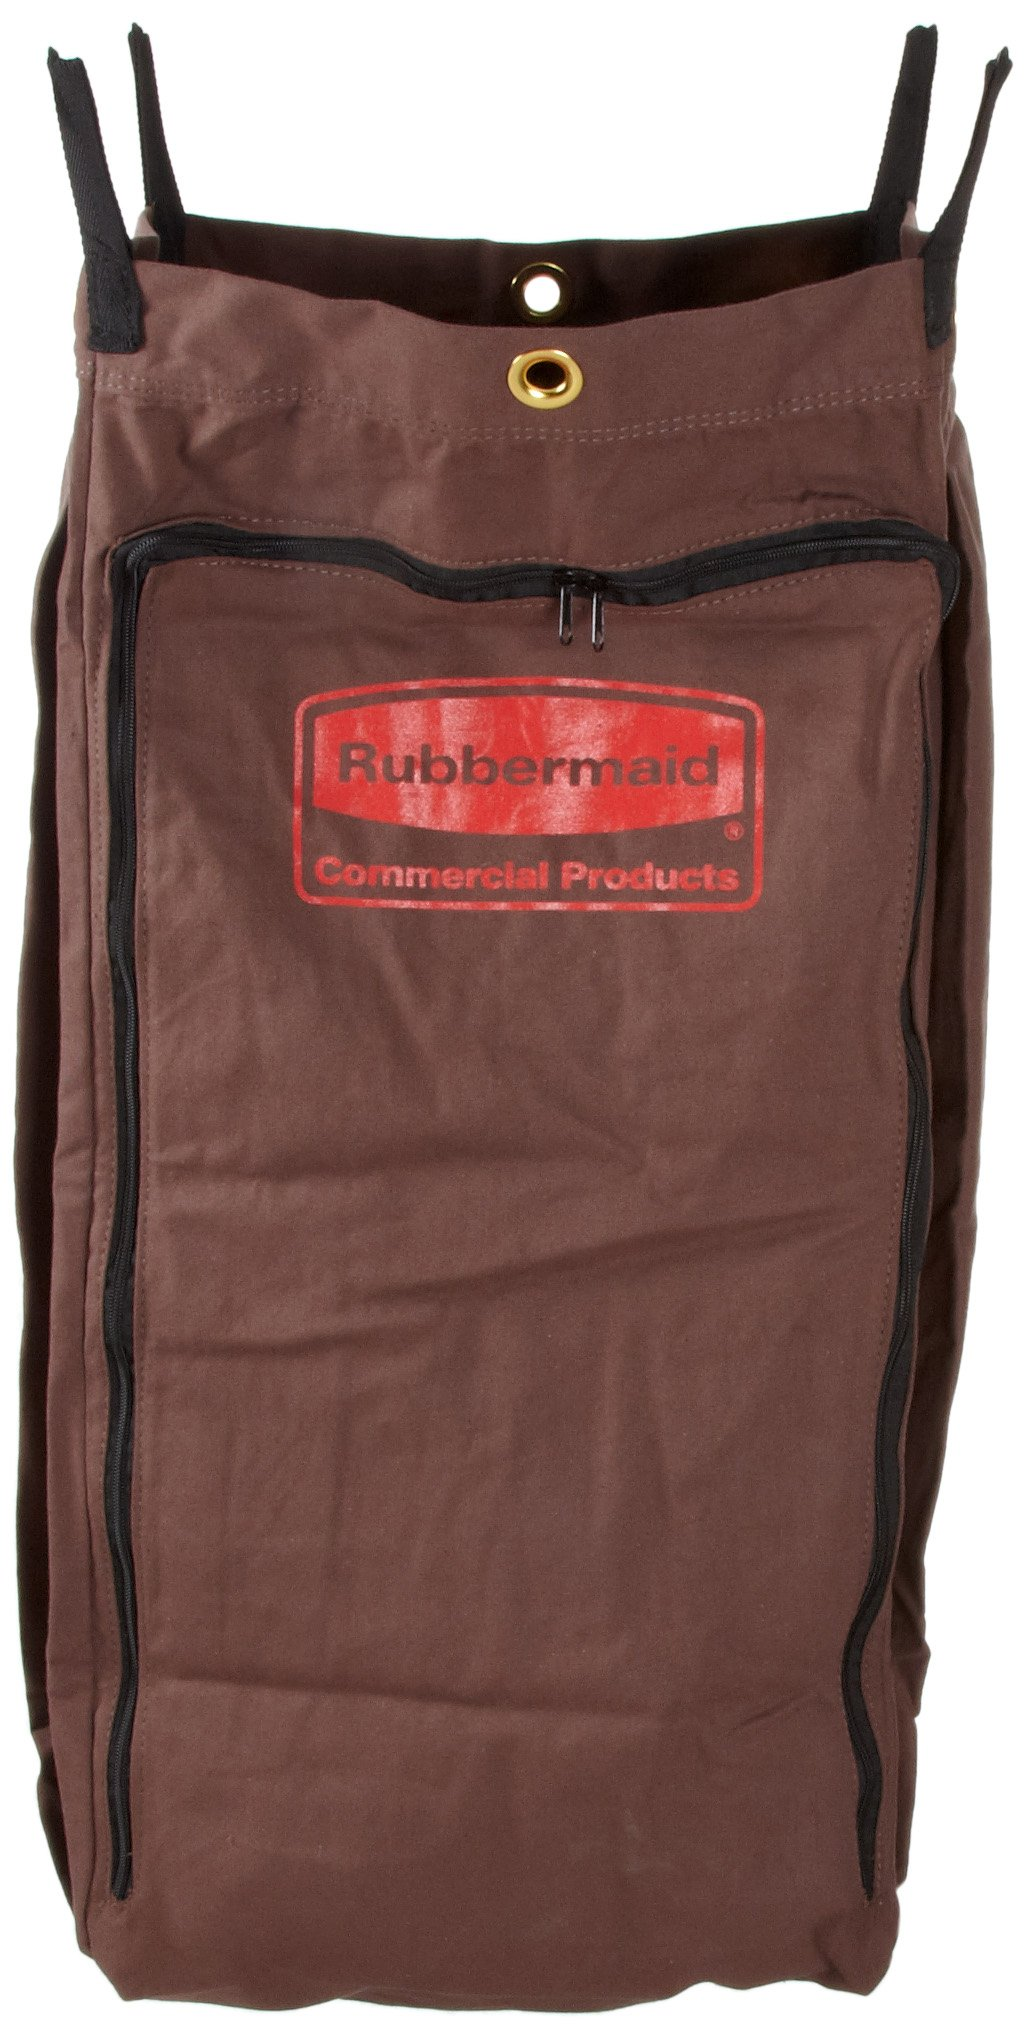 Rubbermaid Commercial Executive Series FG9T0400BRN Canvas Linen Accessory Bag for Full Size and Compact Housekeeping Carts, Brown by Rubbermaid Commercial Products